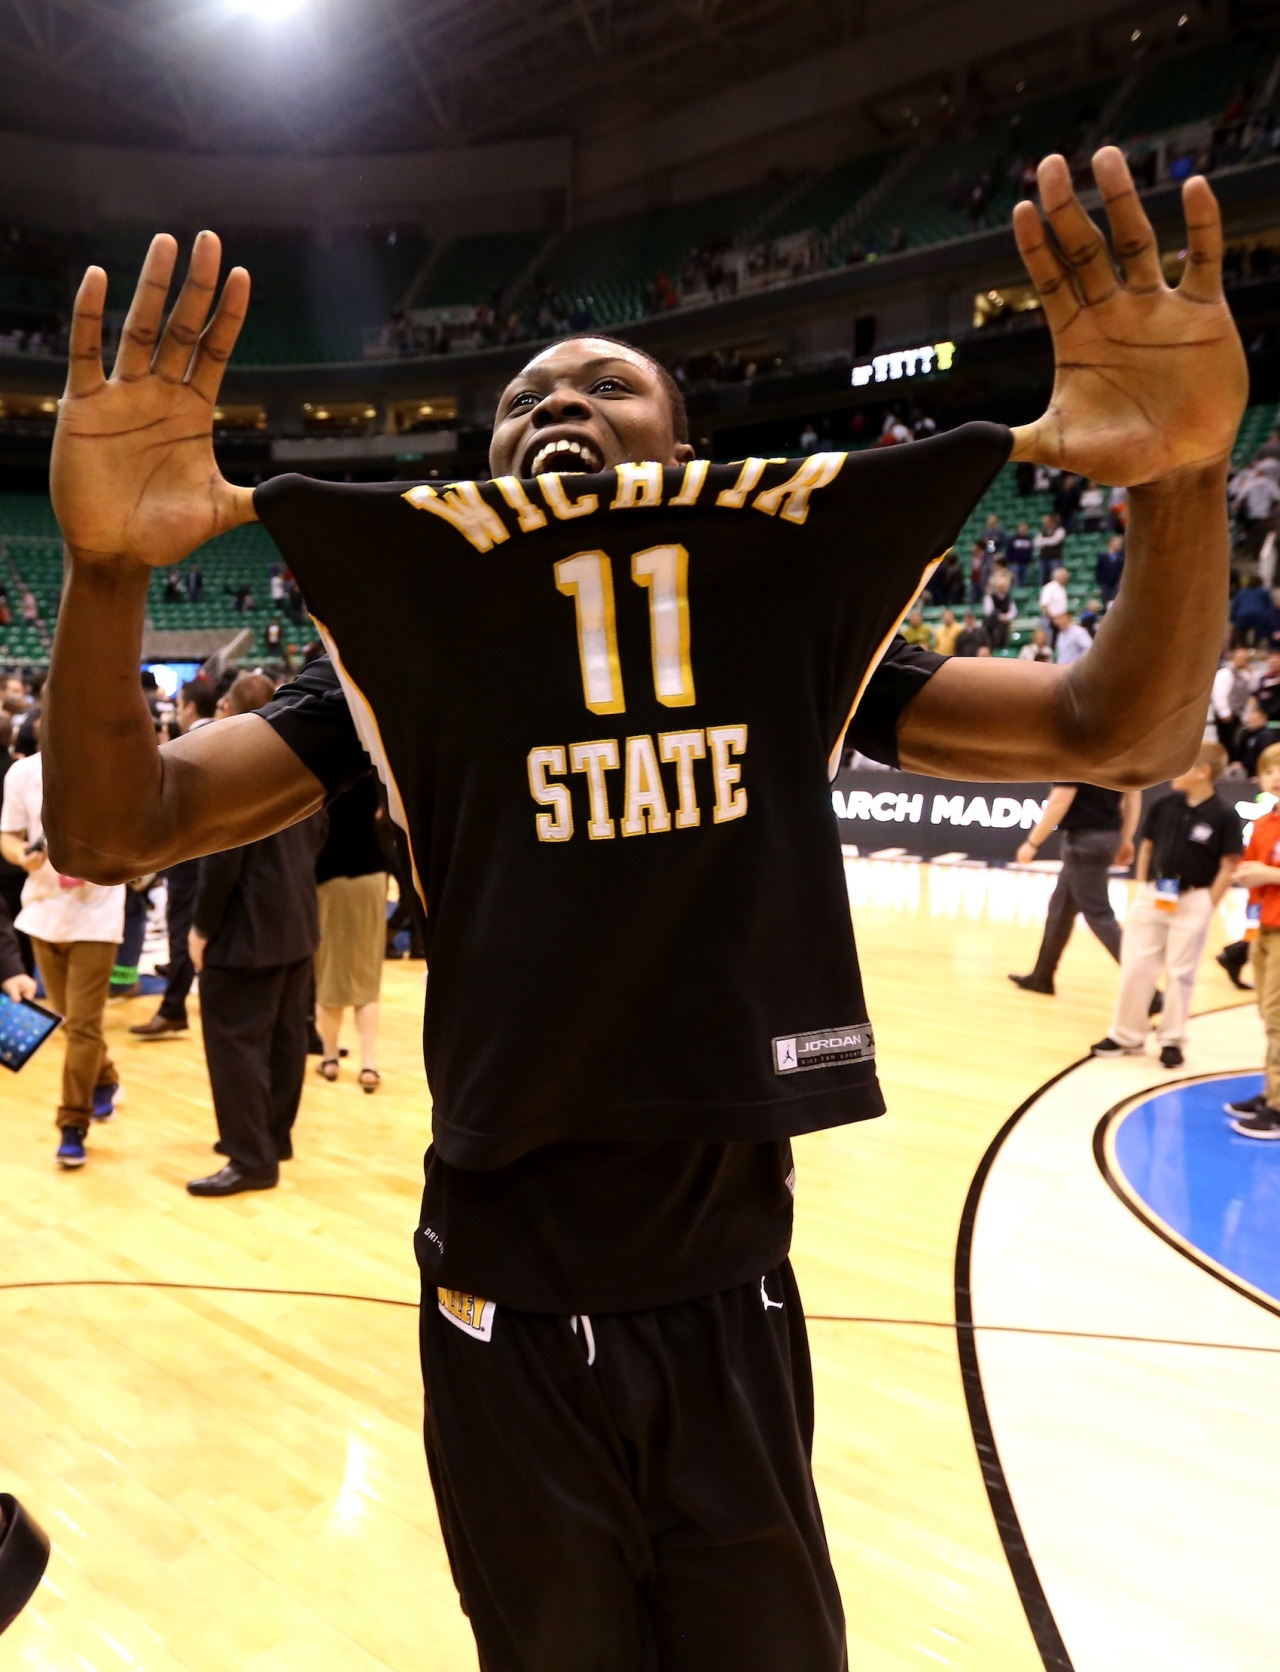 Pic: GONE-zaga! Wichita St upsets No. 1 Gonzaga 76-70.